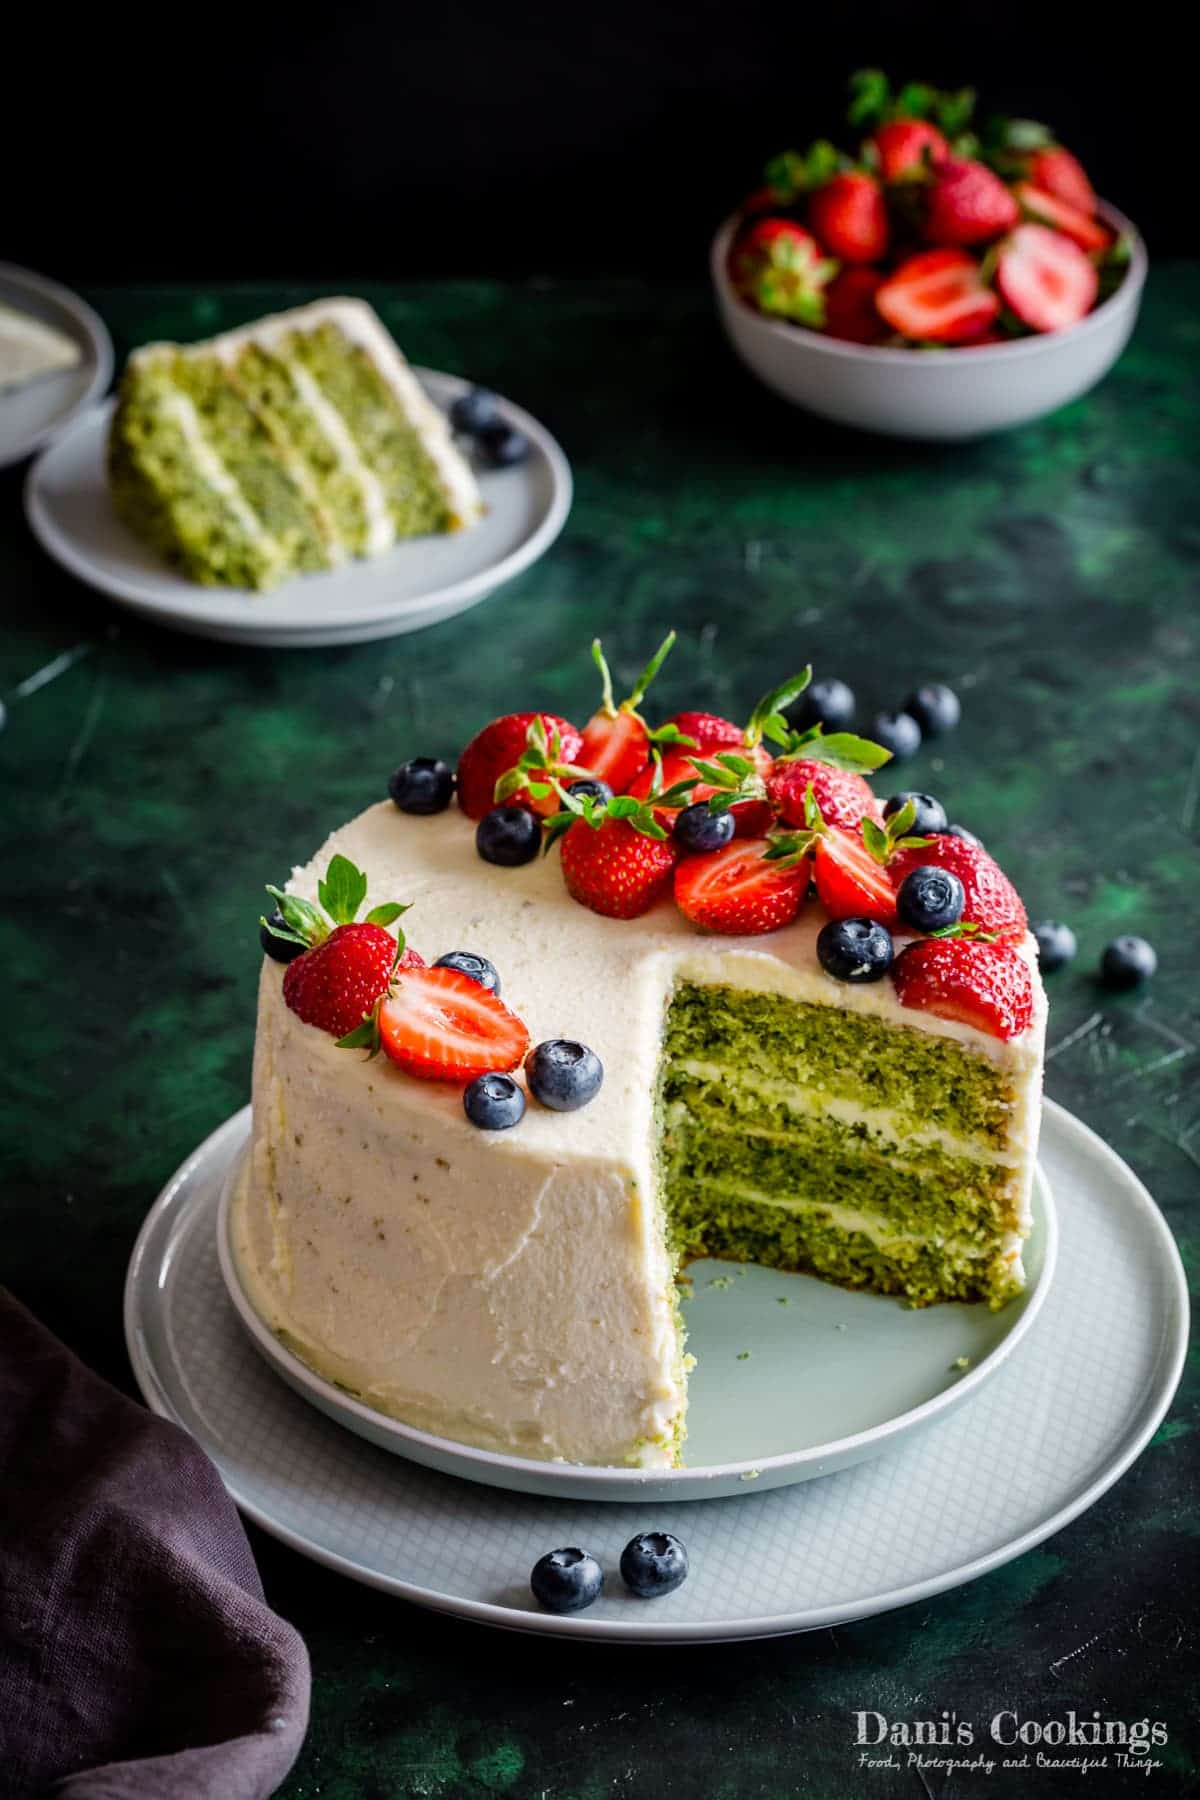 a cake with green layers and white frosting and berries, cut